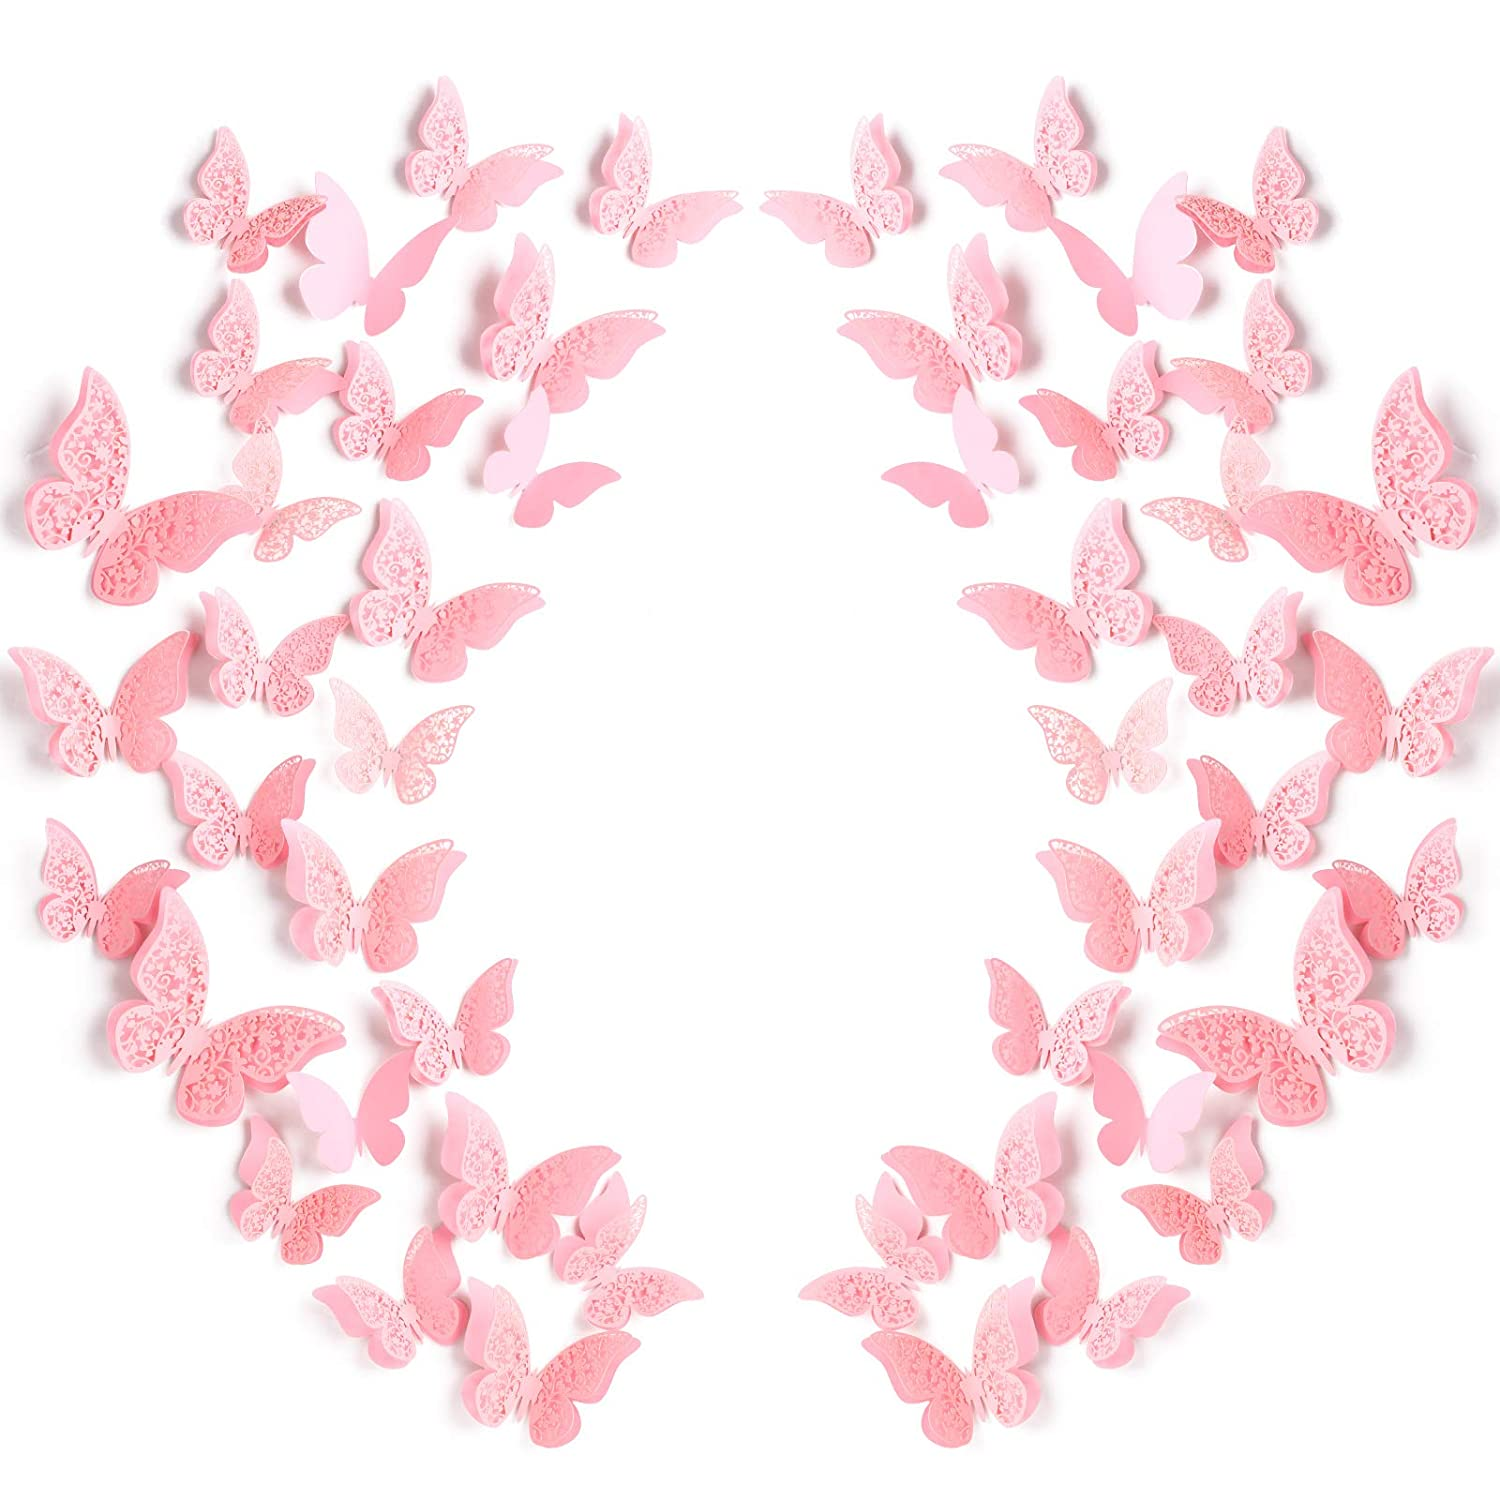 120 Pieces 60 Pairs 3D Layered Butterfly Wall Decor Removable Butterfly Stickers Hollow Mural Decals DIY Decorative Wall Art Crafts for Baby Room Home Wedding Decor, Pink